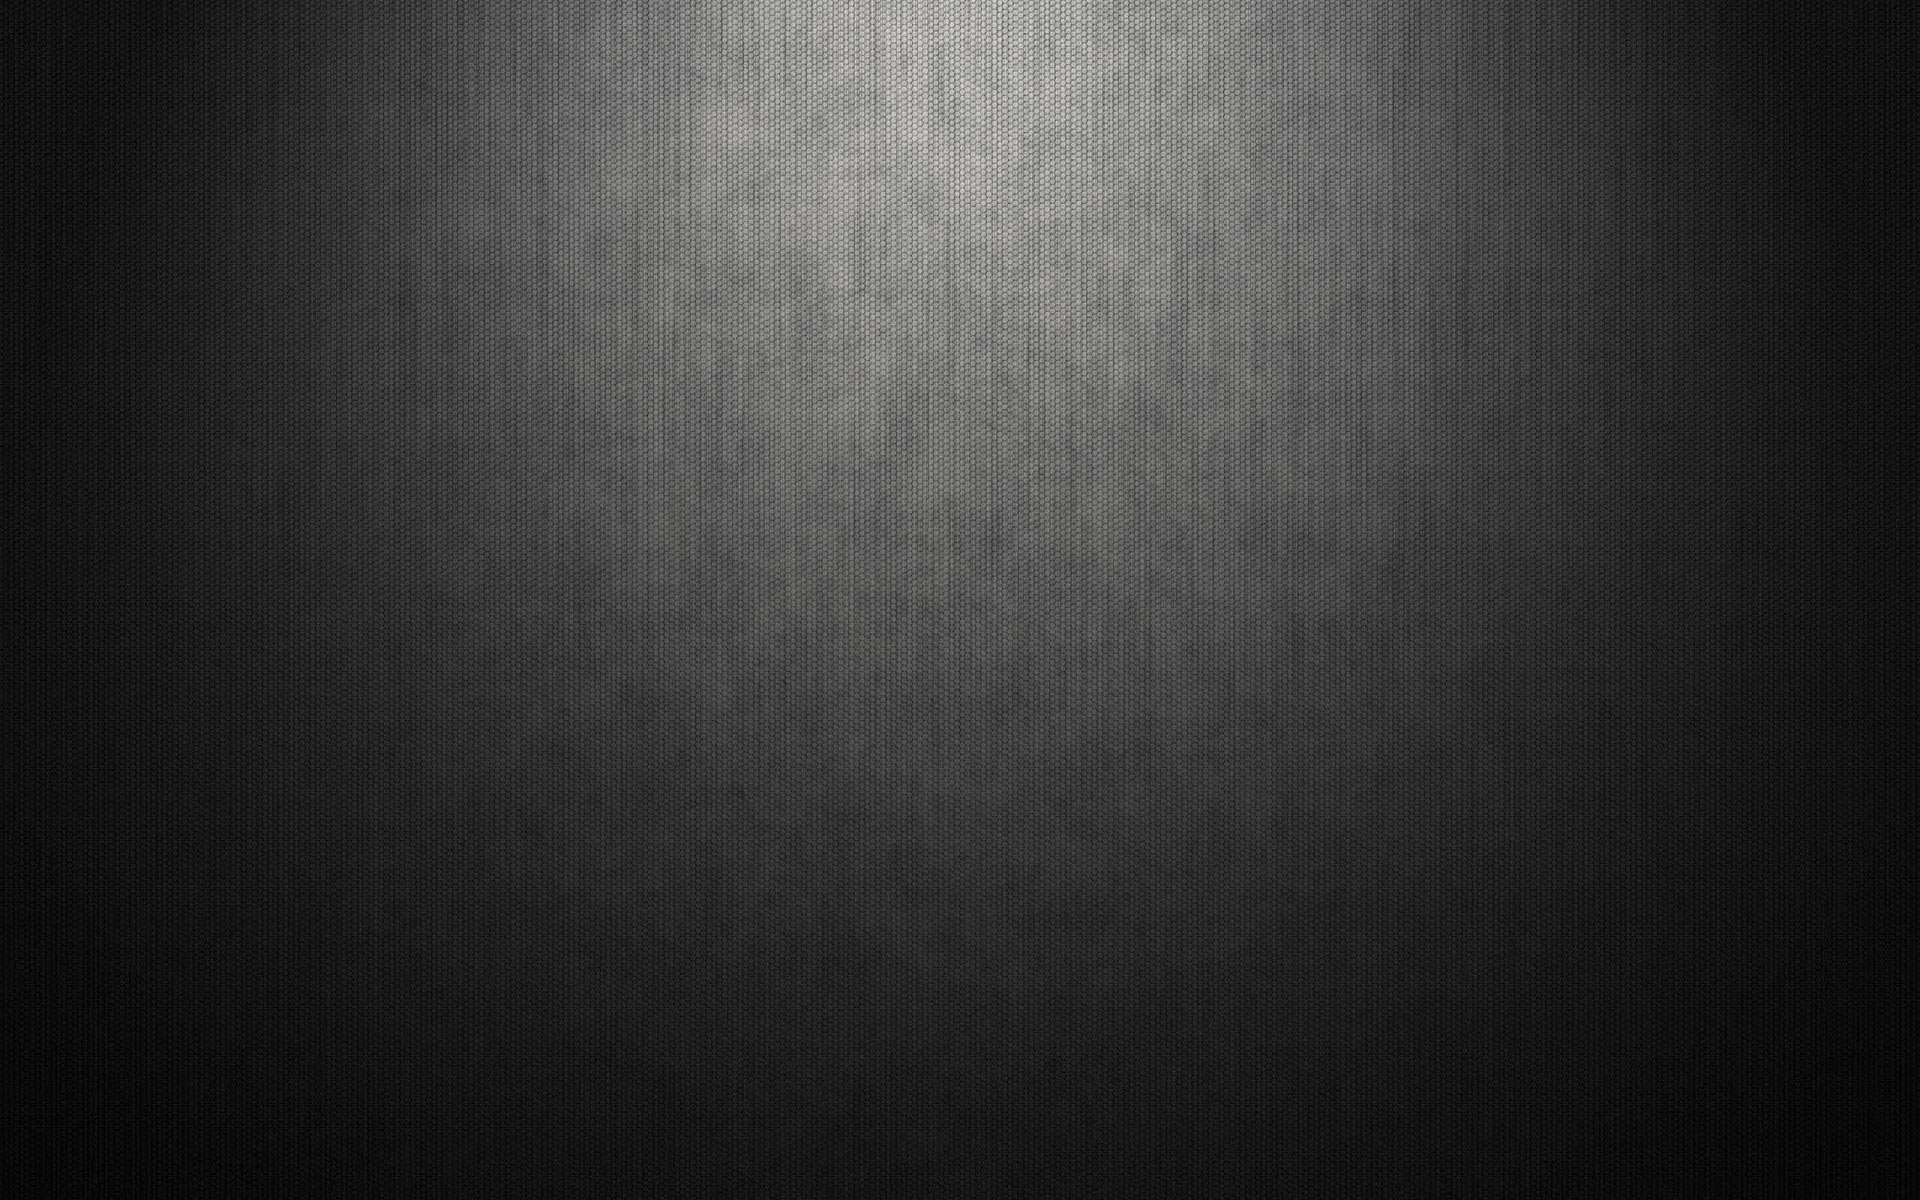 Hd Live Gray Pictures Wallpapers Lnu44 Wp